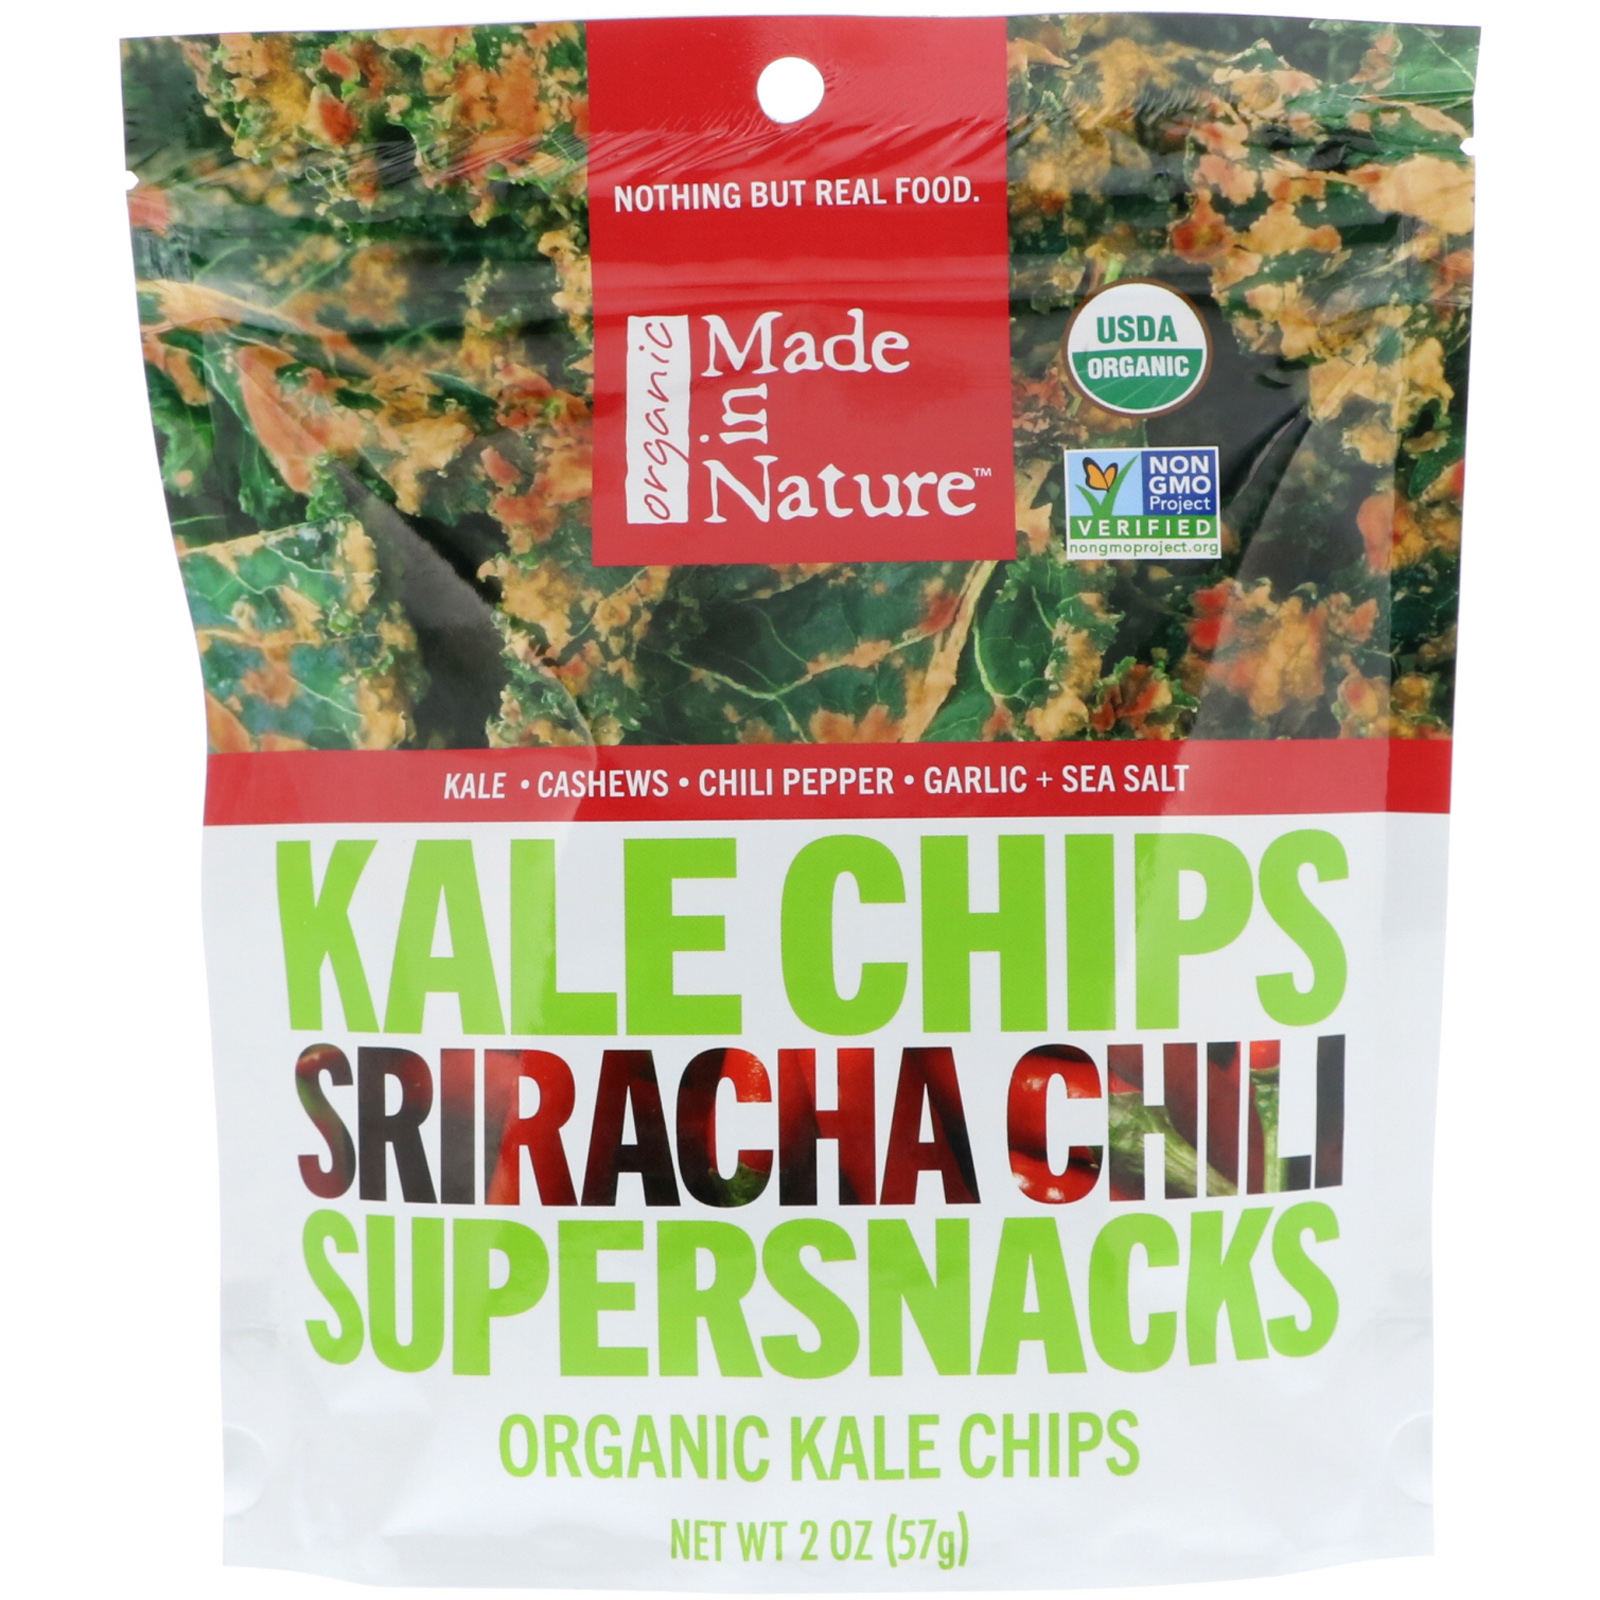 Made in Nature, Organic Kale Chips, Sriracha Chili Supersnacks, 2 oz (57 g)  (Discontinued Item)